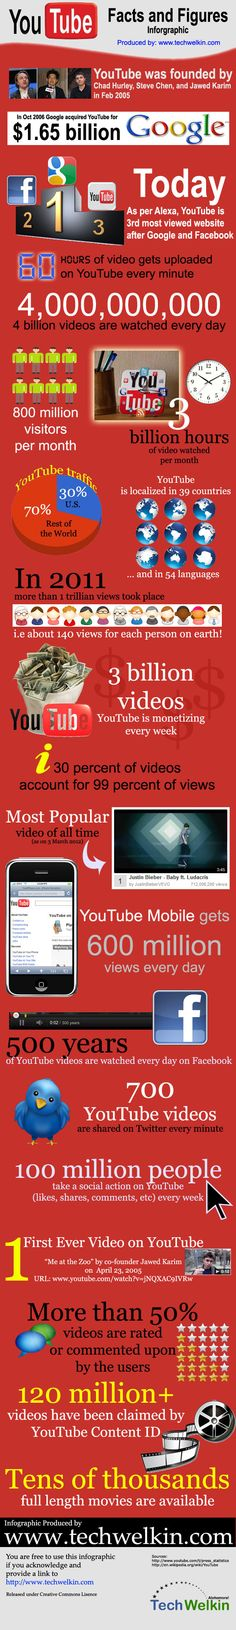 YouTube-facts-and-figures